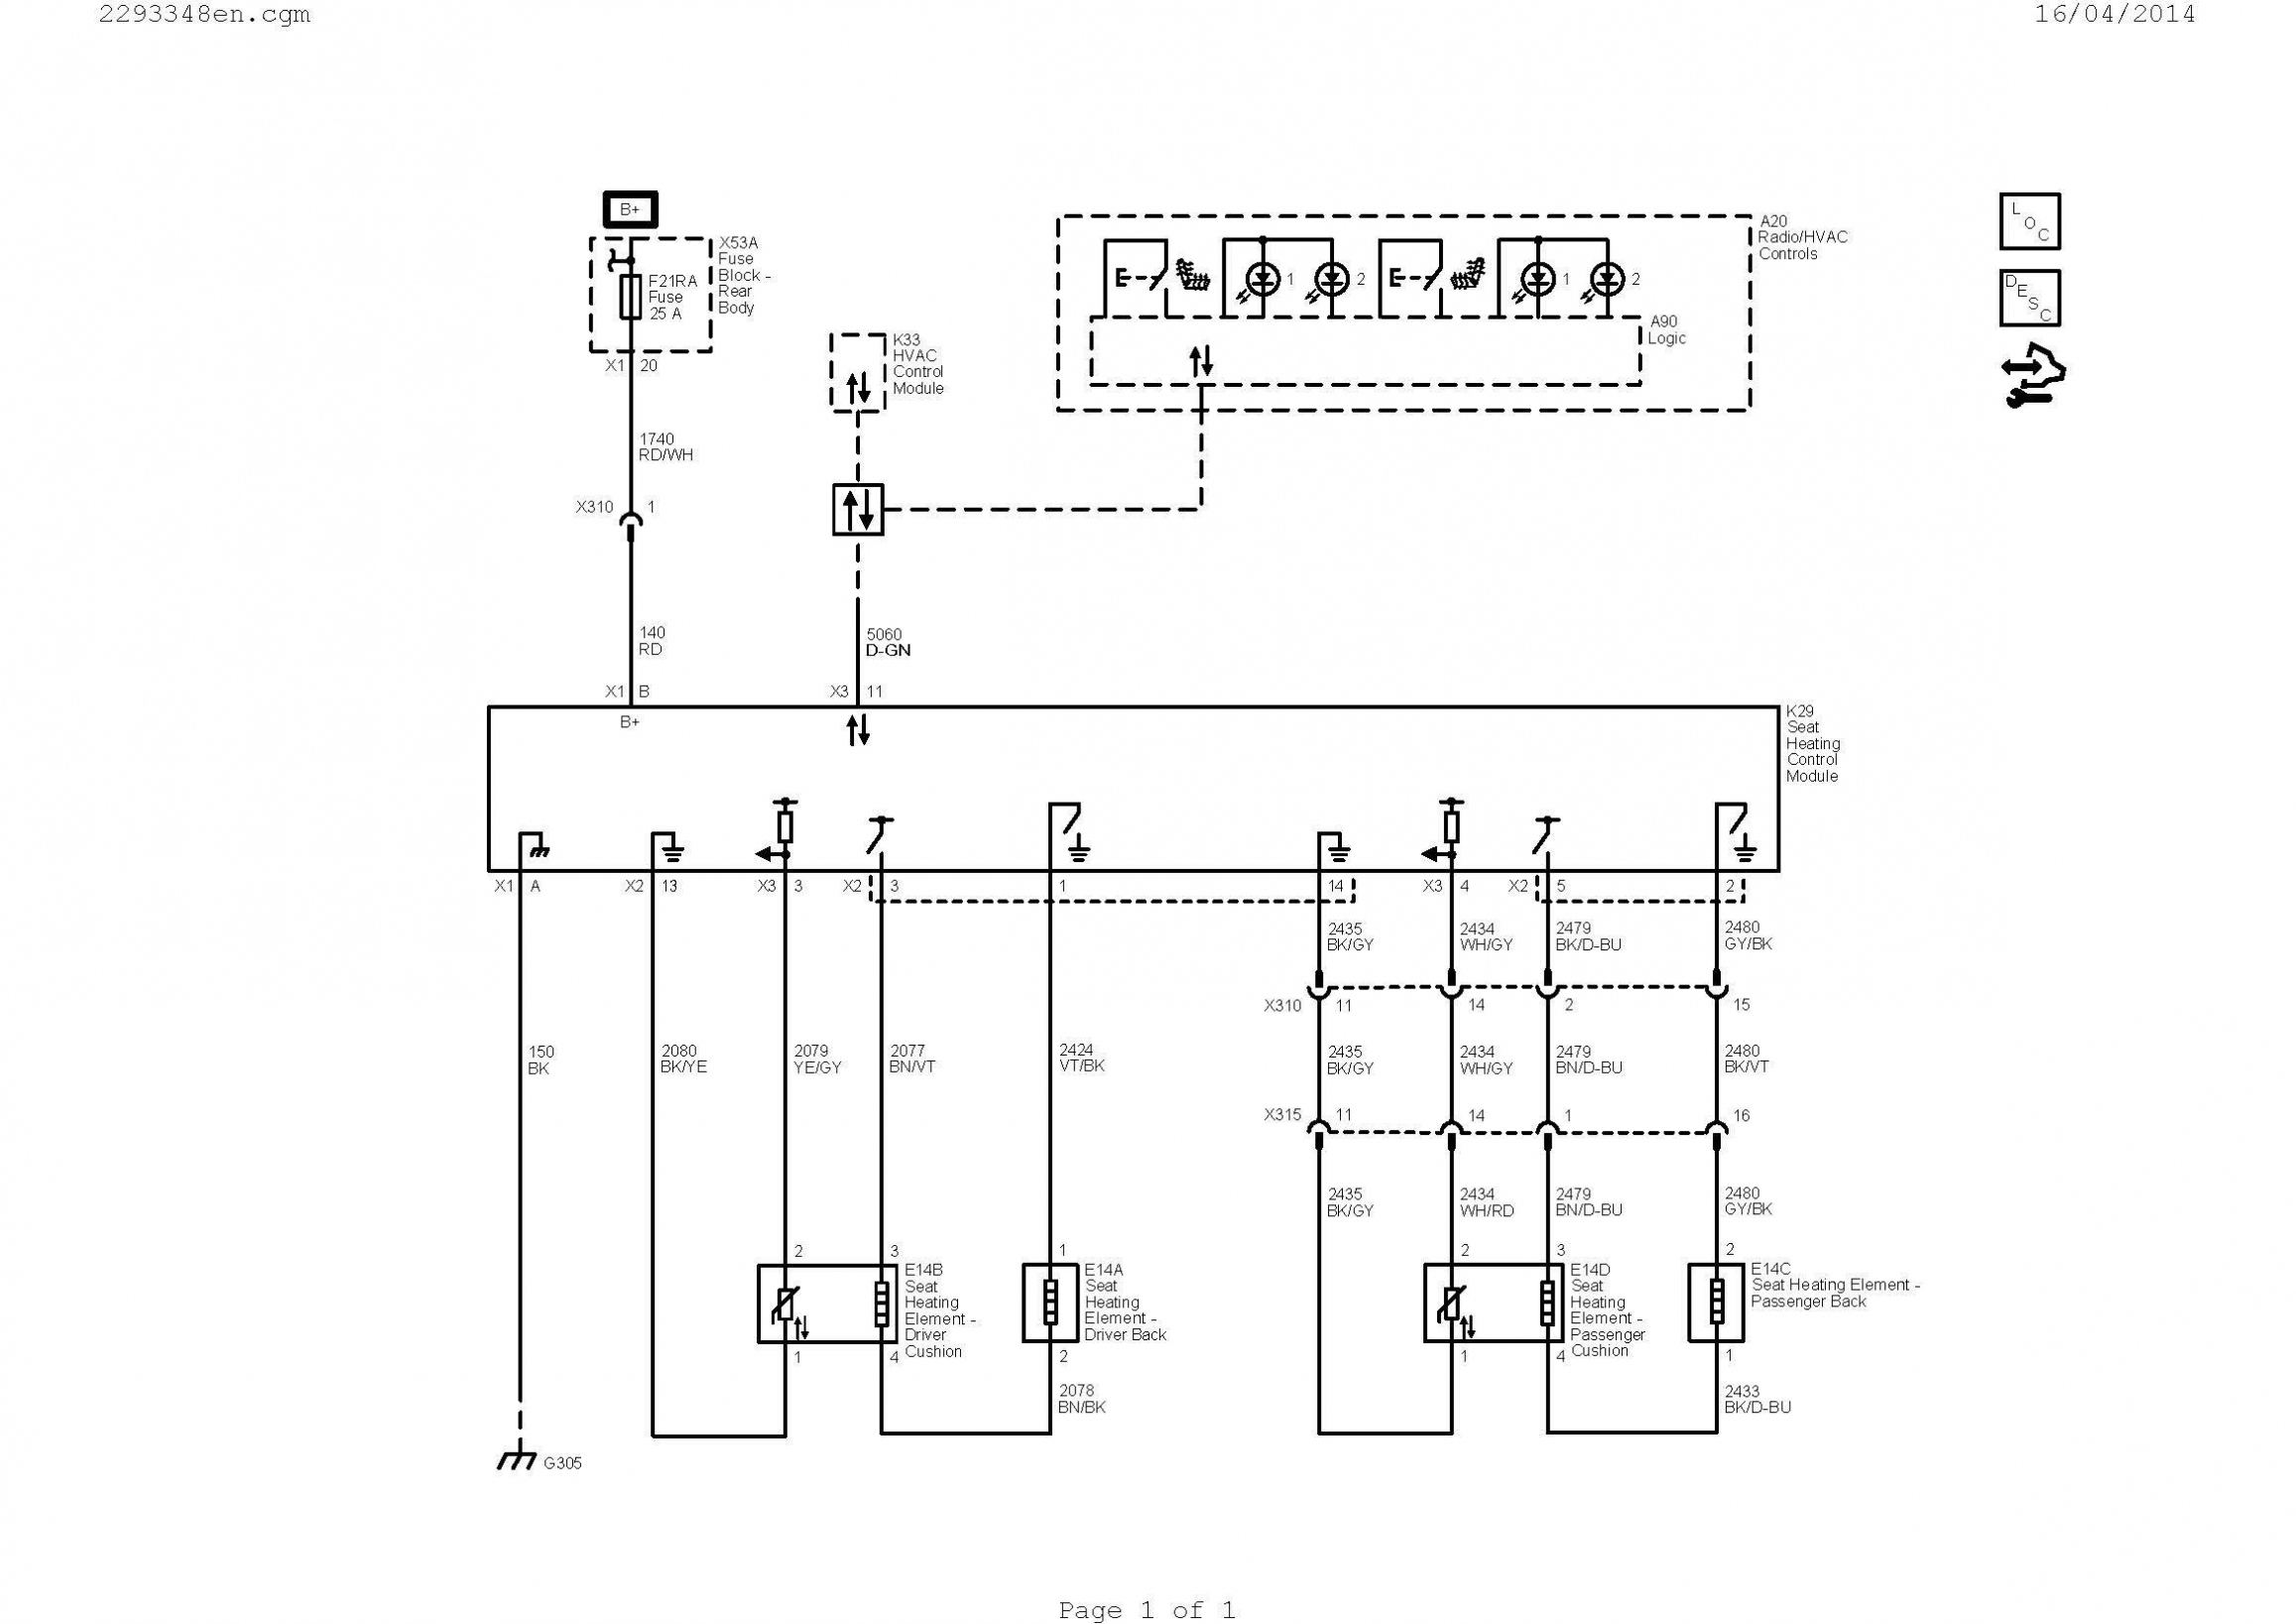 Wiring Diagram Book - 12 Coil Wiring Diagram S 7h